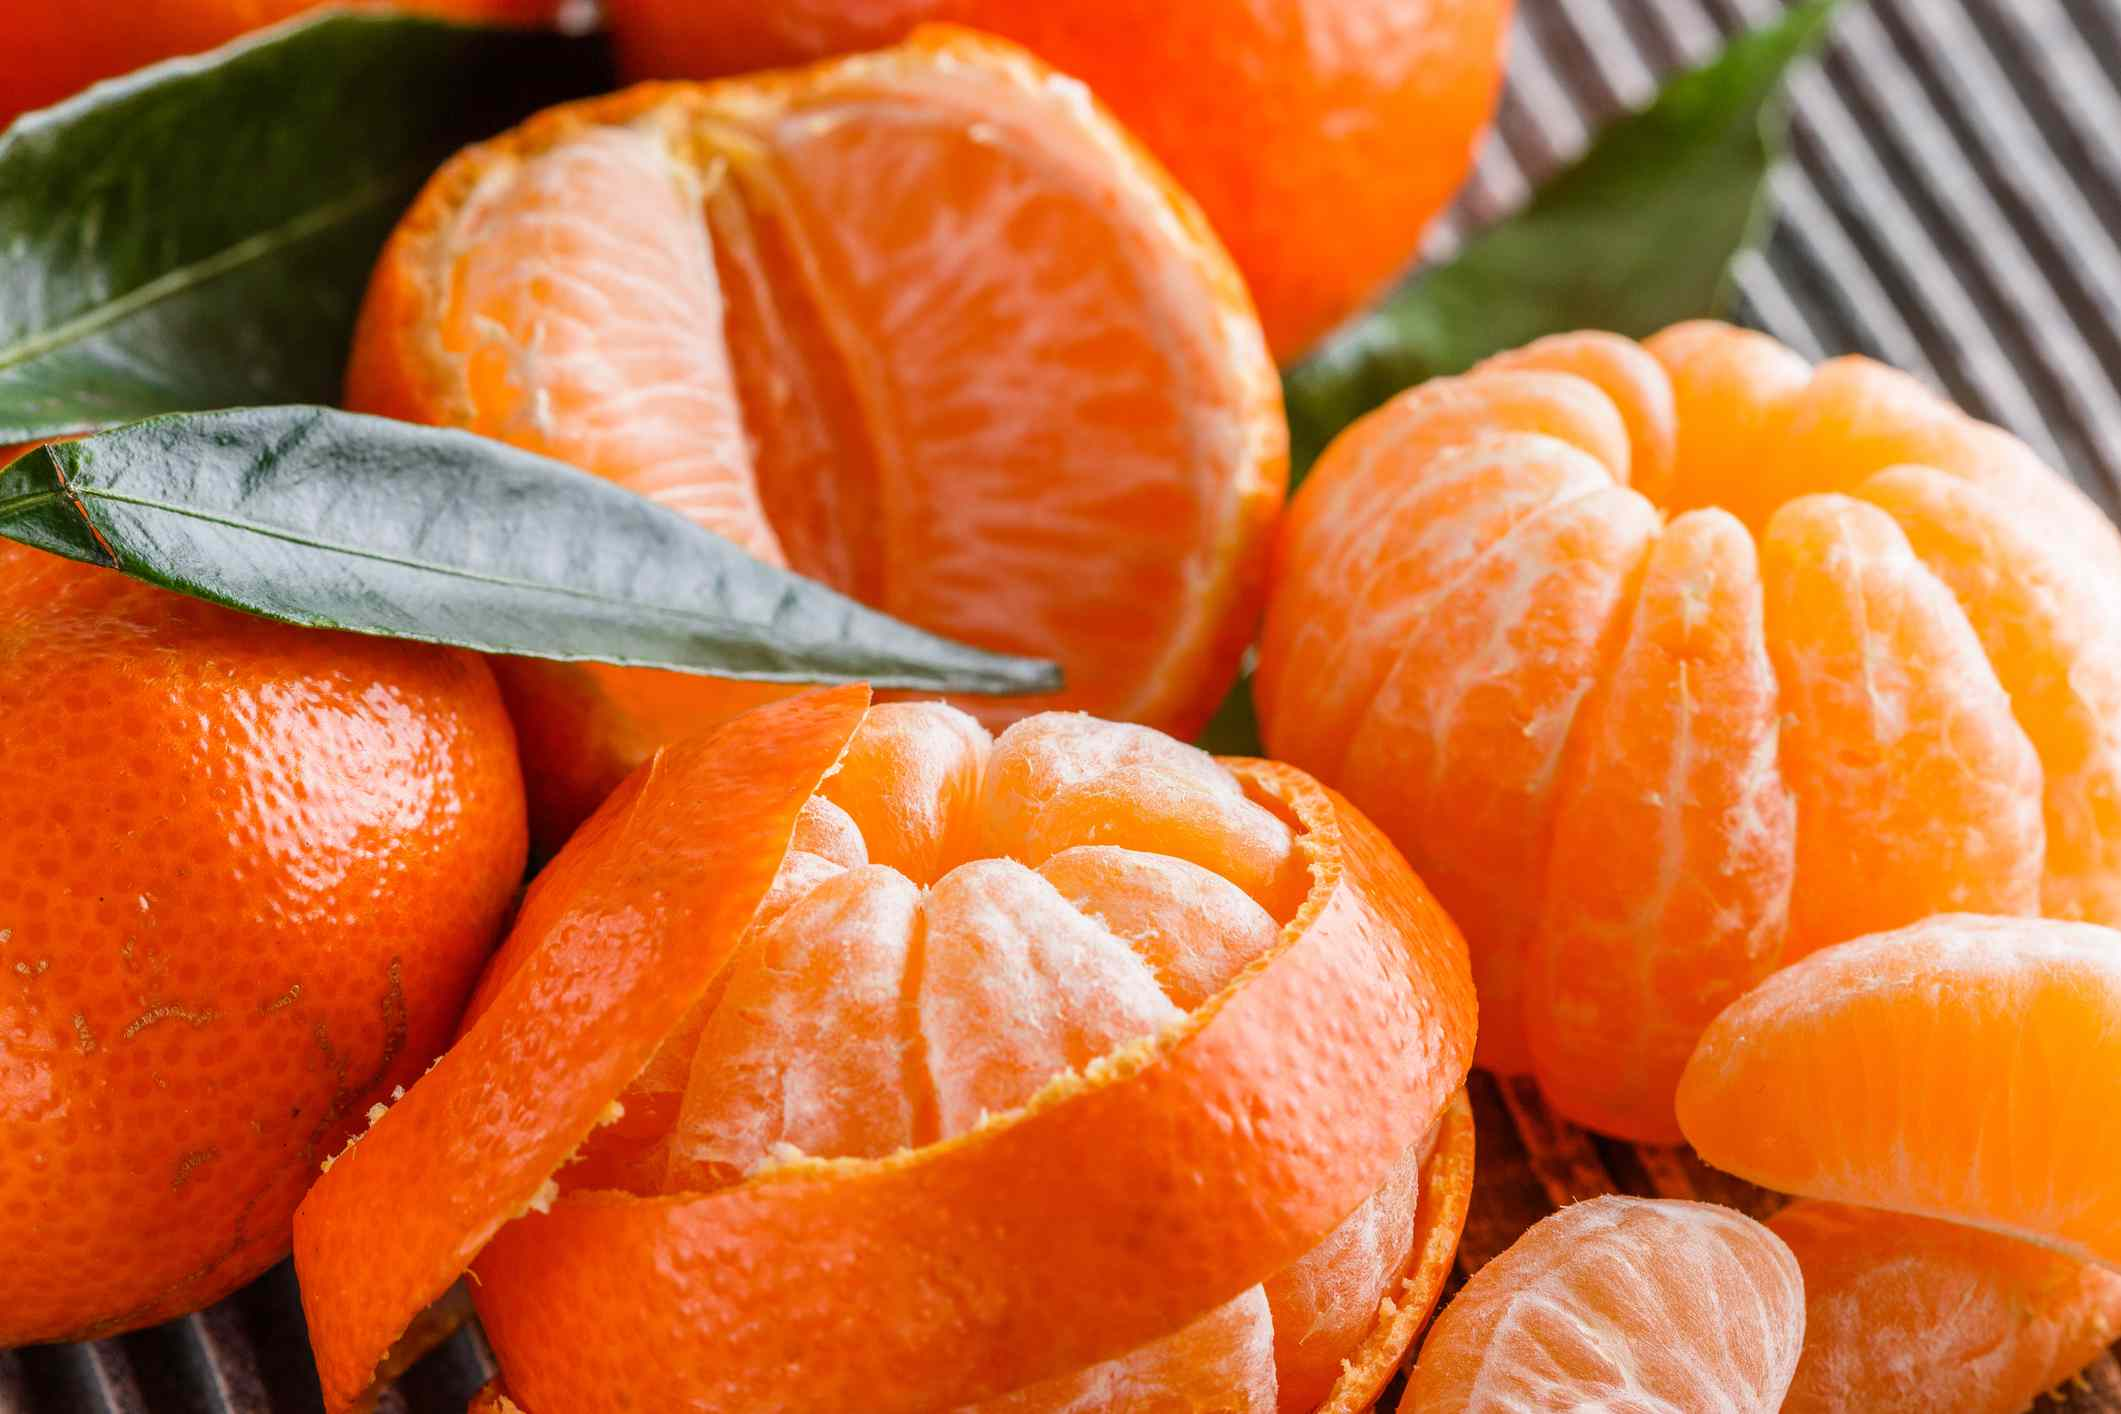 juicy mandarin on a gray wooden rustic background